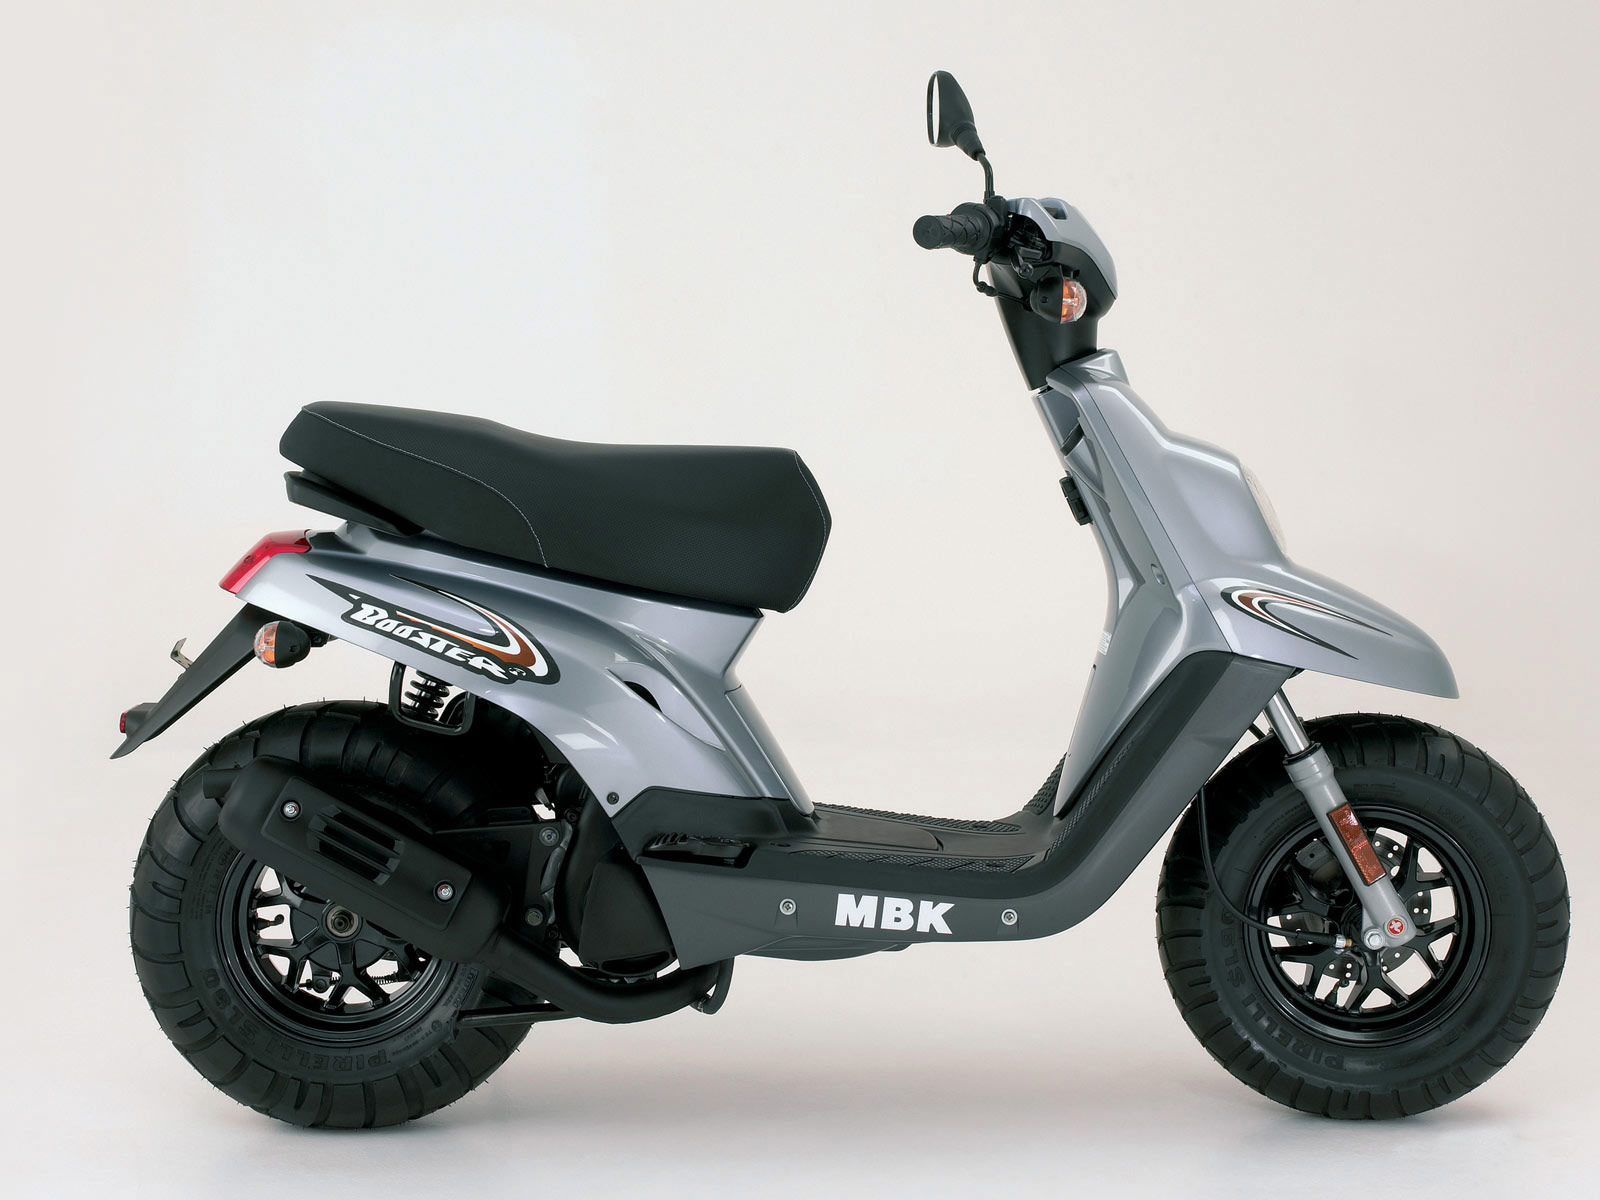 Mbk Scooter Pictures 2006 Mbk Booster Specifications